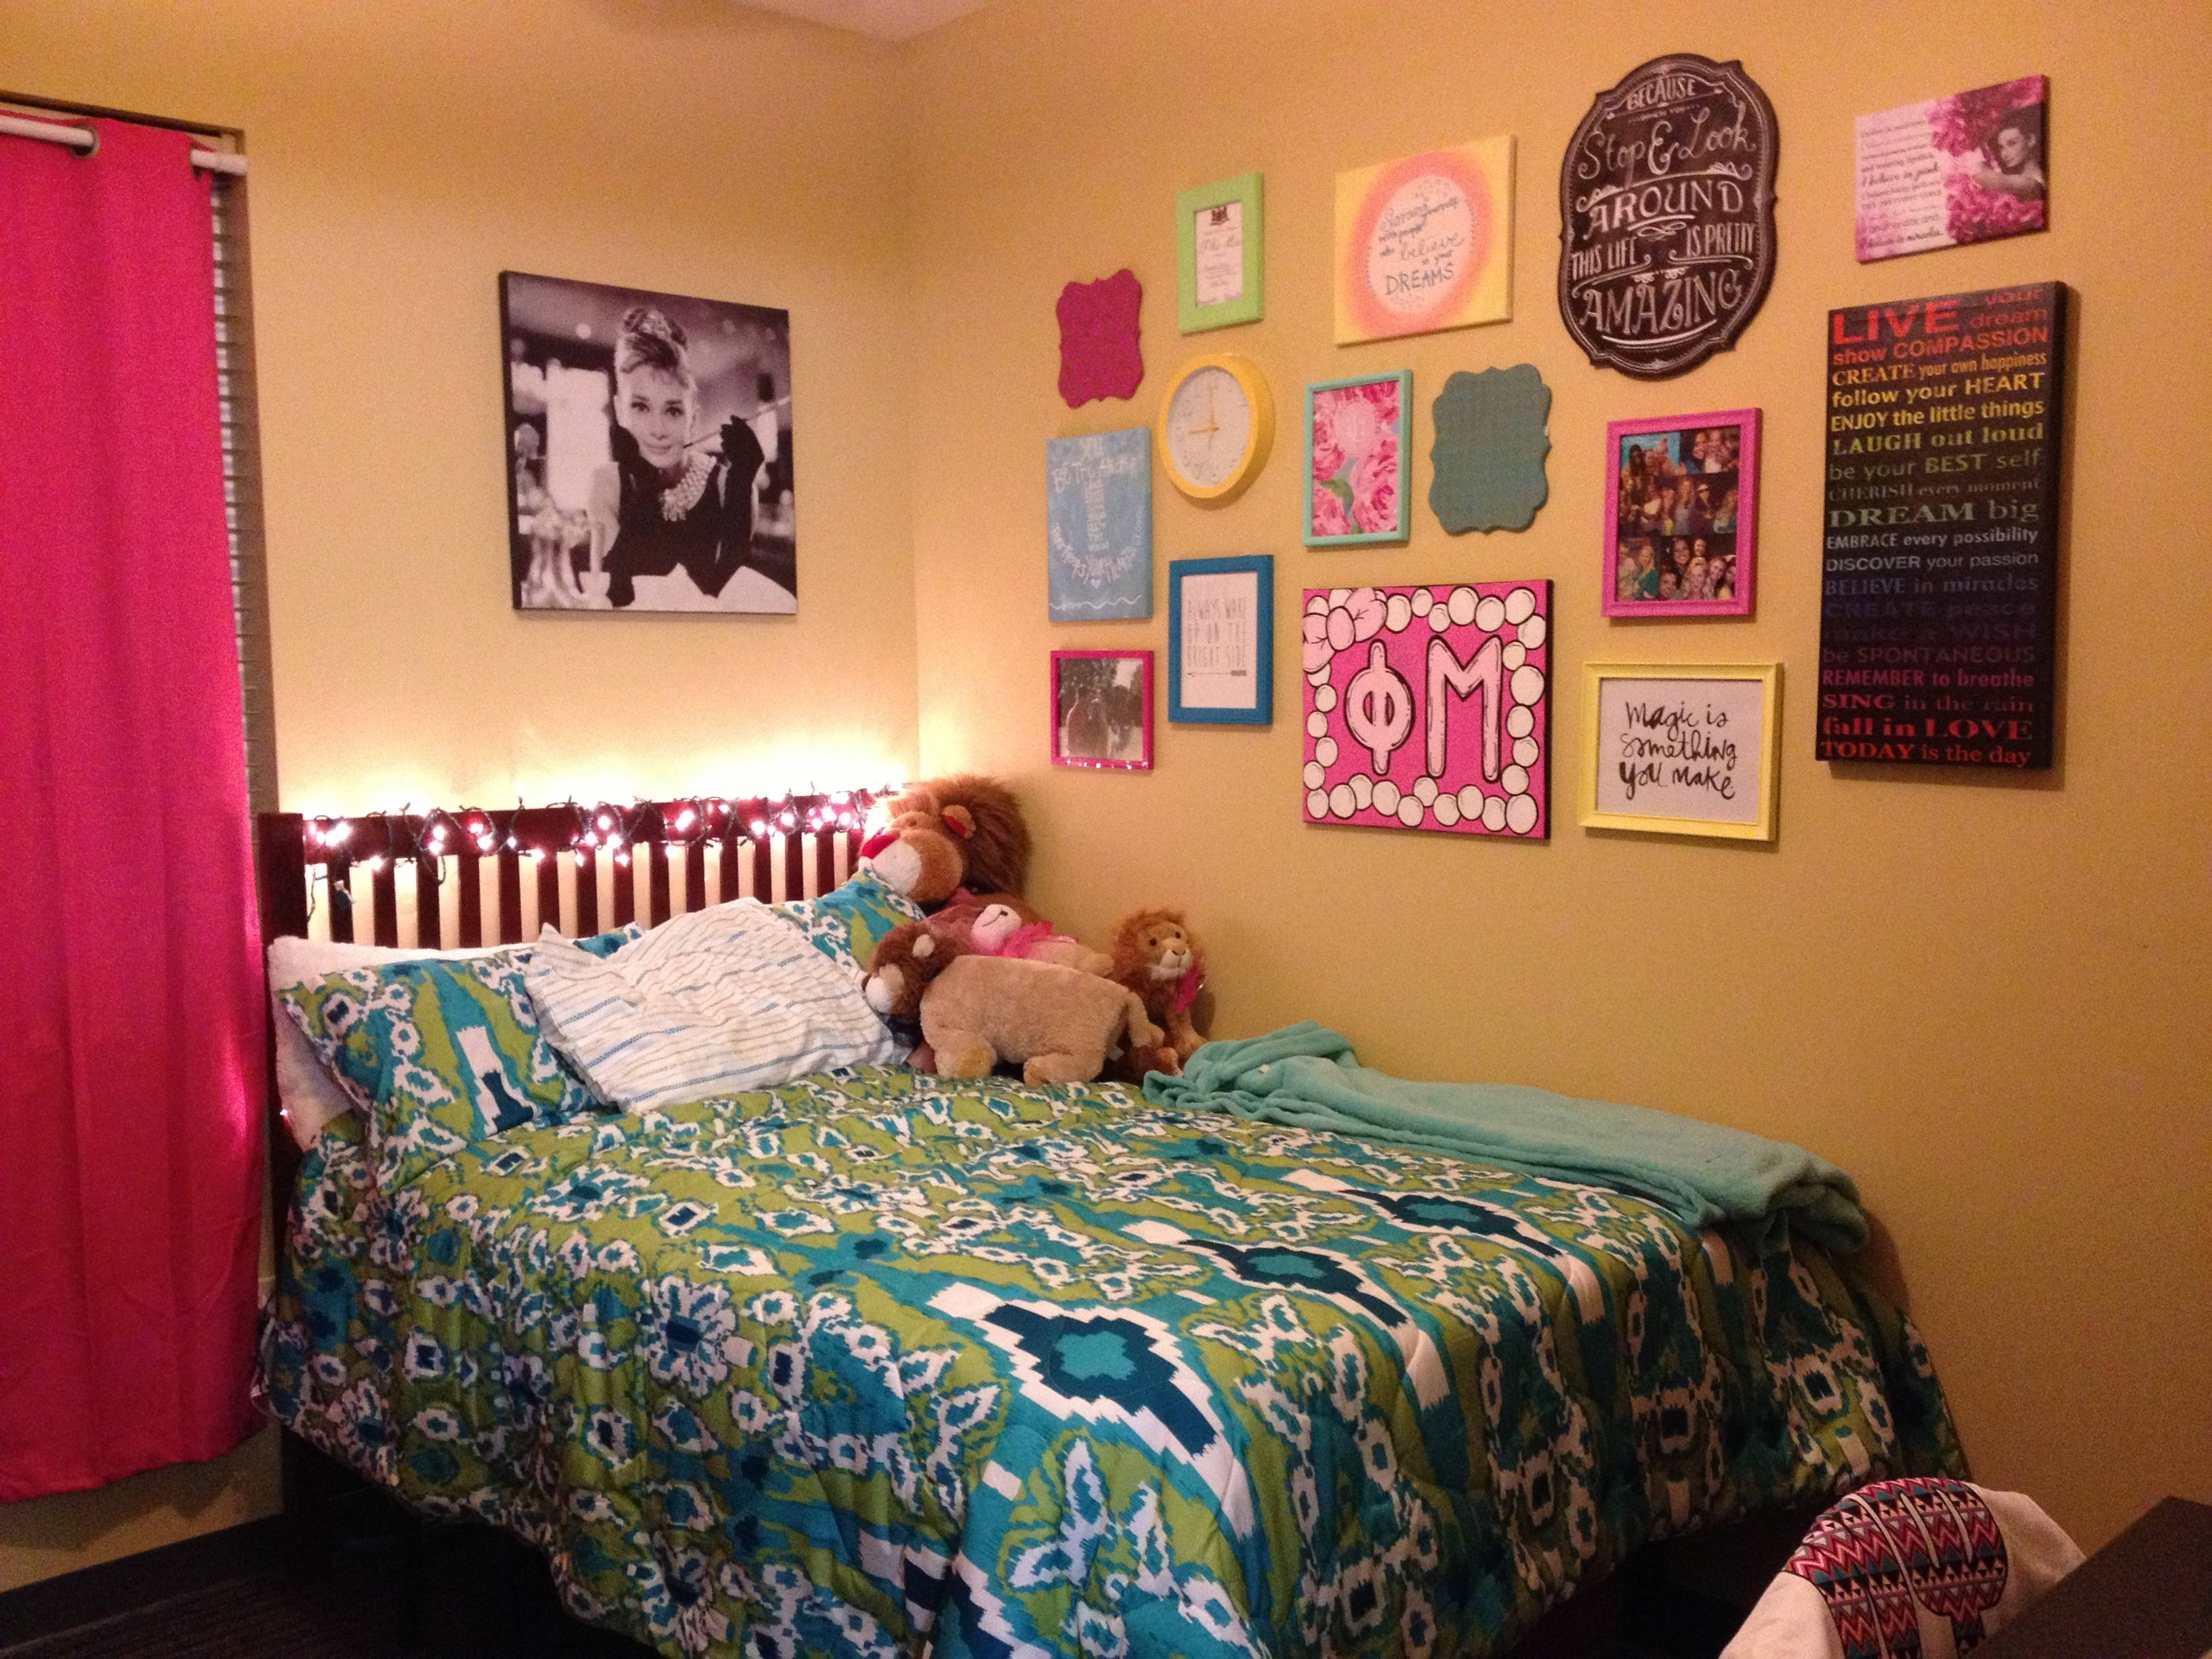 Dorm Room Wall Decorating Ideas Fair Design Inspiration F Intended For Most Recently Released College Dorm Wall Art (View 15 of 20)